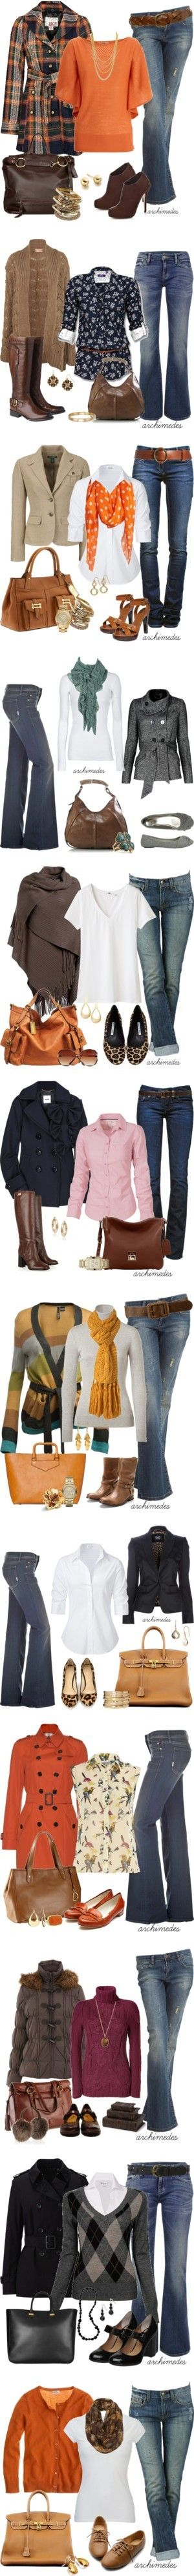 Ready for Fall?Fall Outfit Ideas, Fall Clothing, Fall Clothes, Fall Wardrobes, Fall Looks, I Love Fall, Fall Winte, Fall Outfits, Fall Fashion